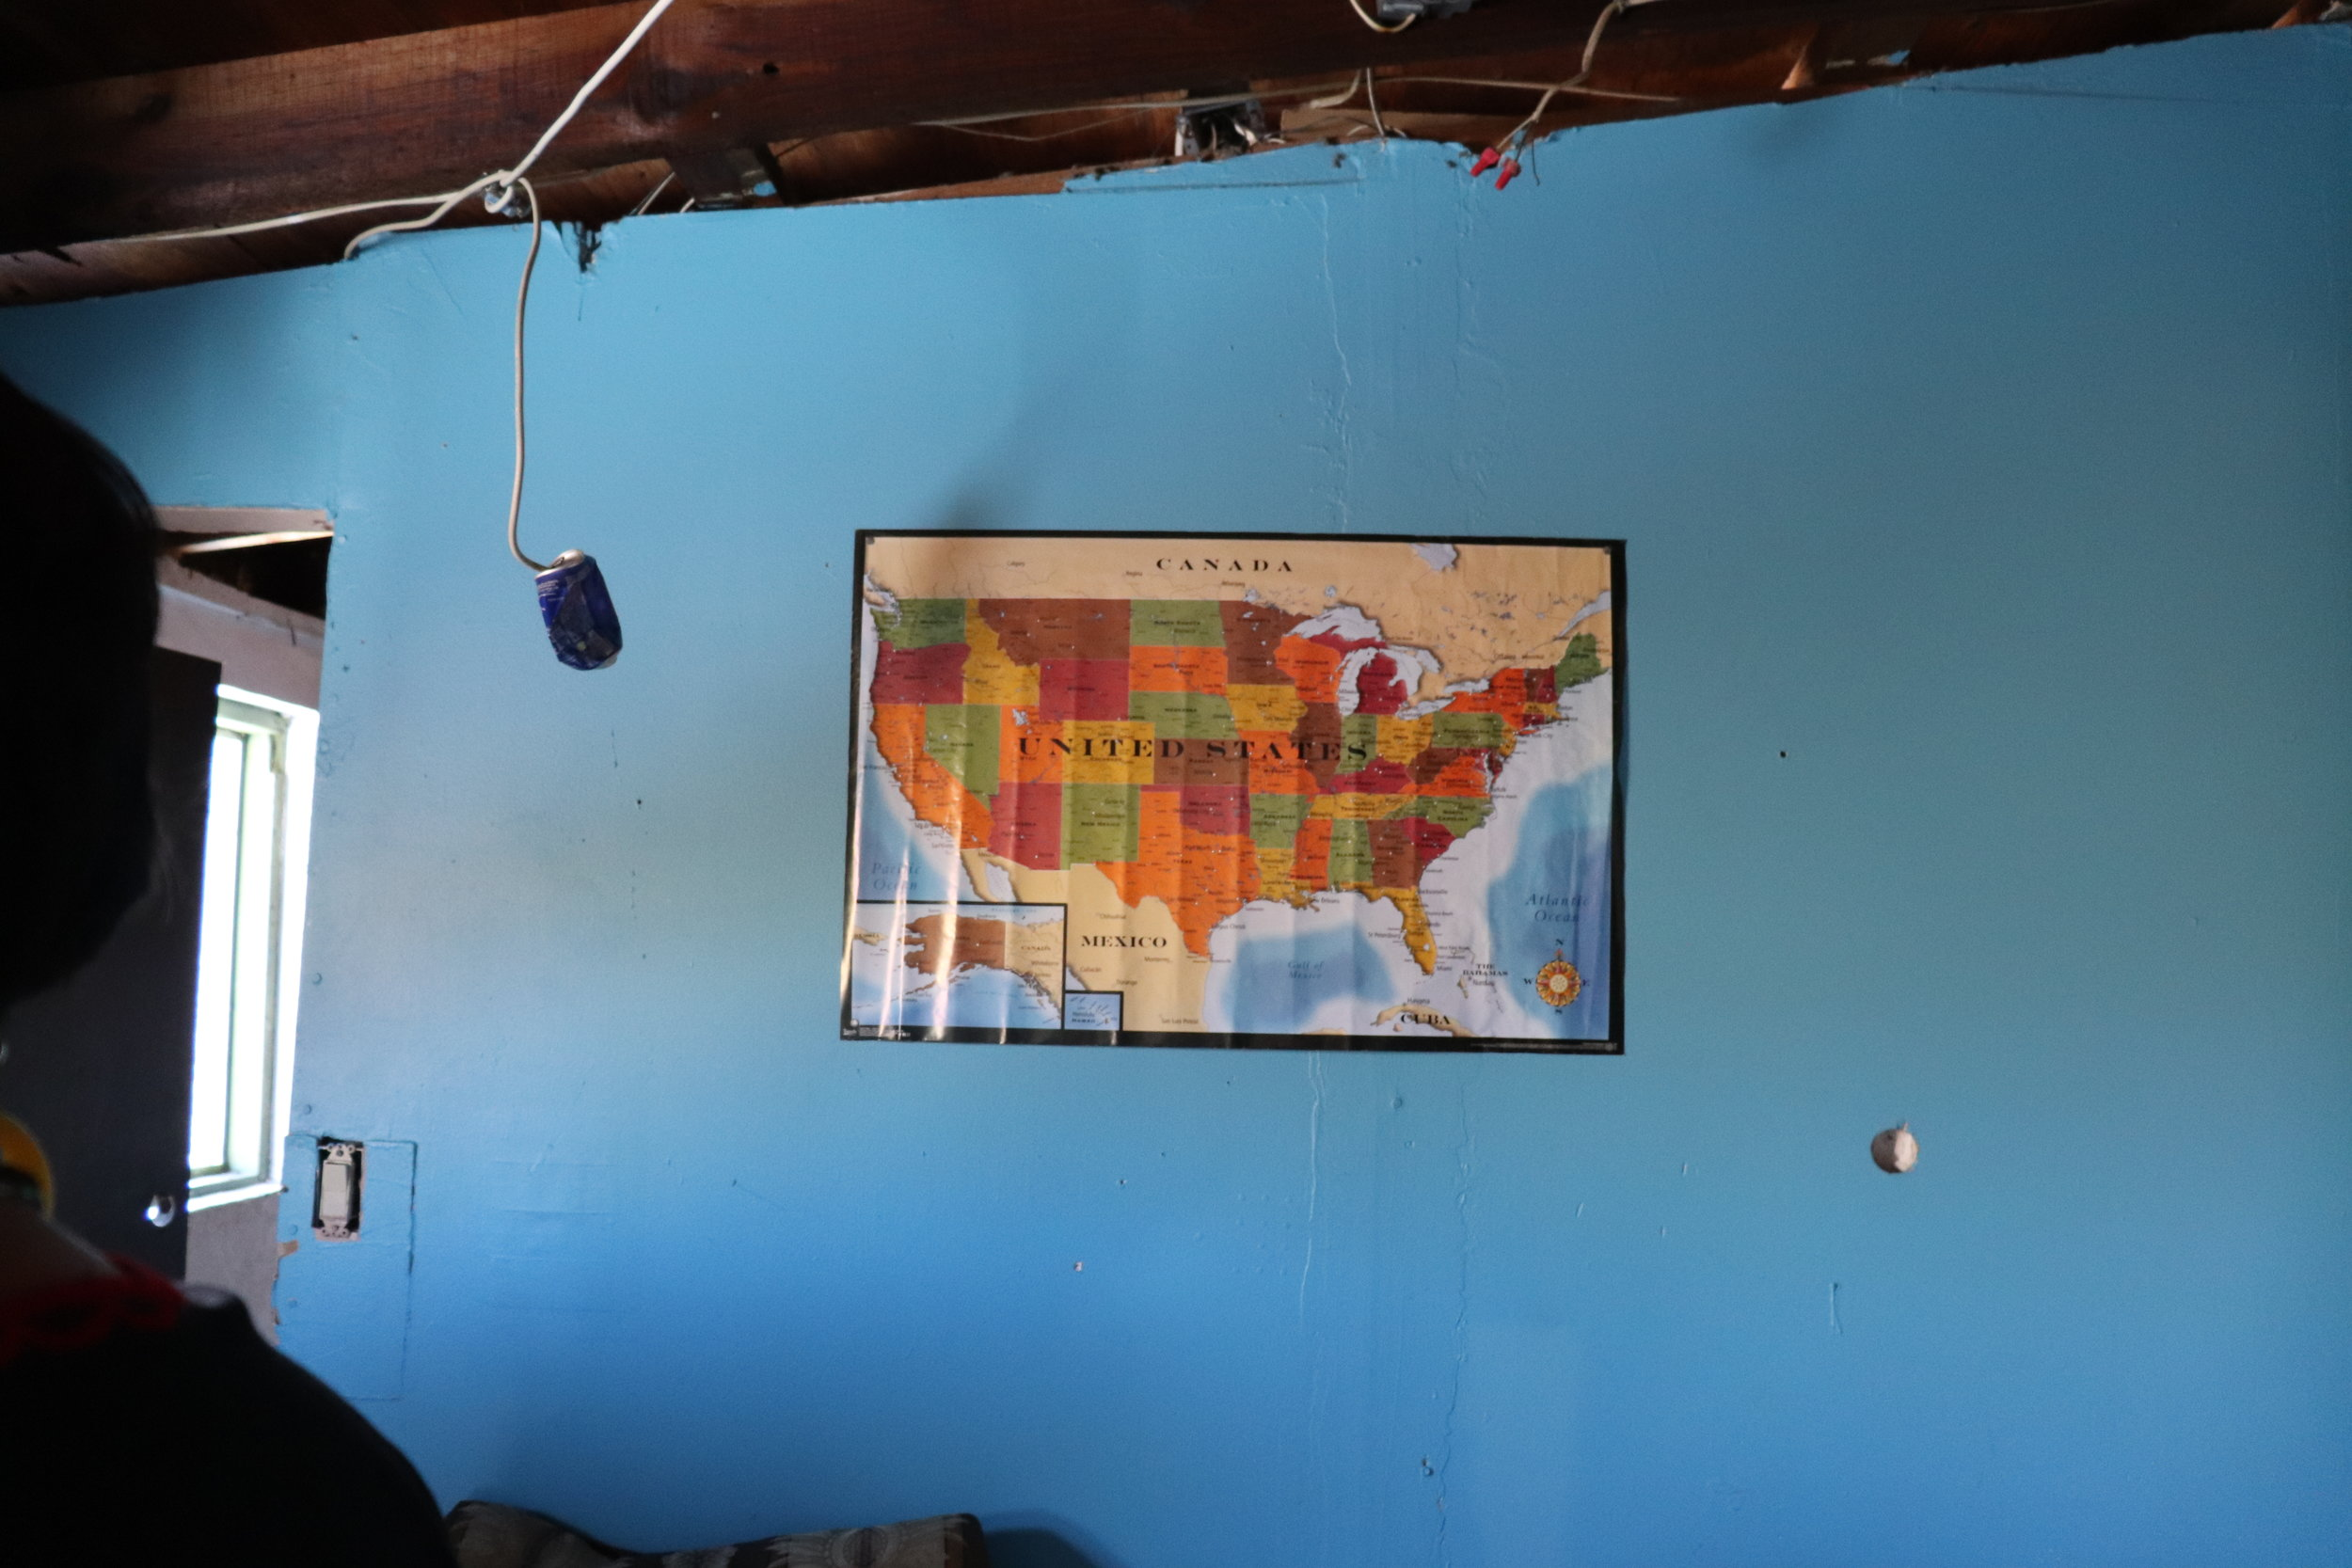 A map of the United States hangs in a common area of La Roca, informing people on how far they have to travel. A lot of them don't know how large the U.S. was until they could view it on a map.